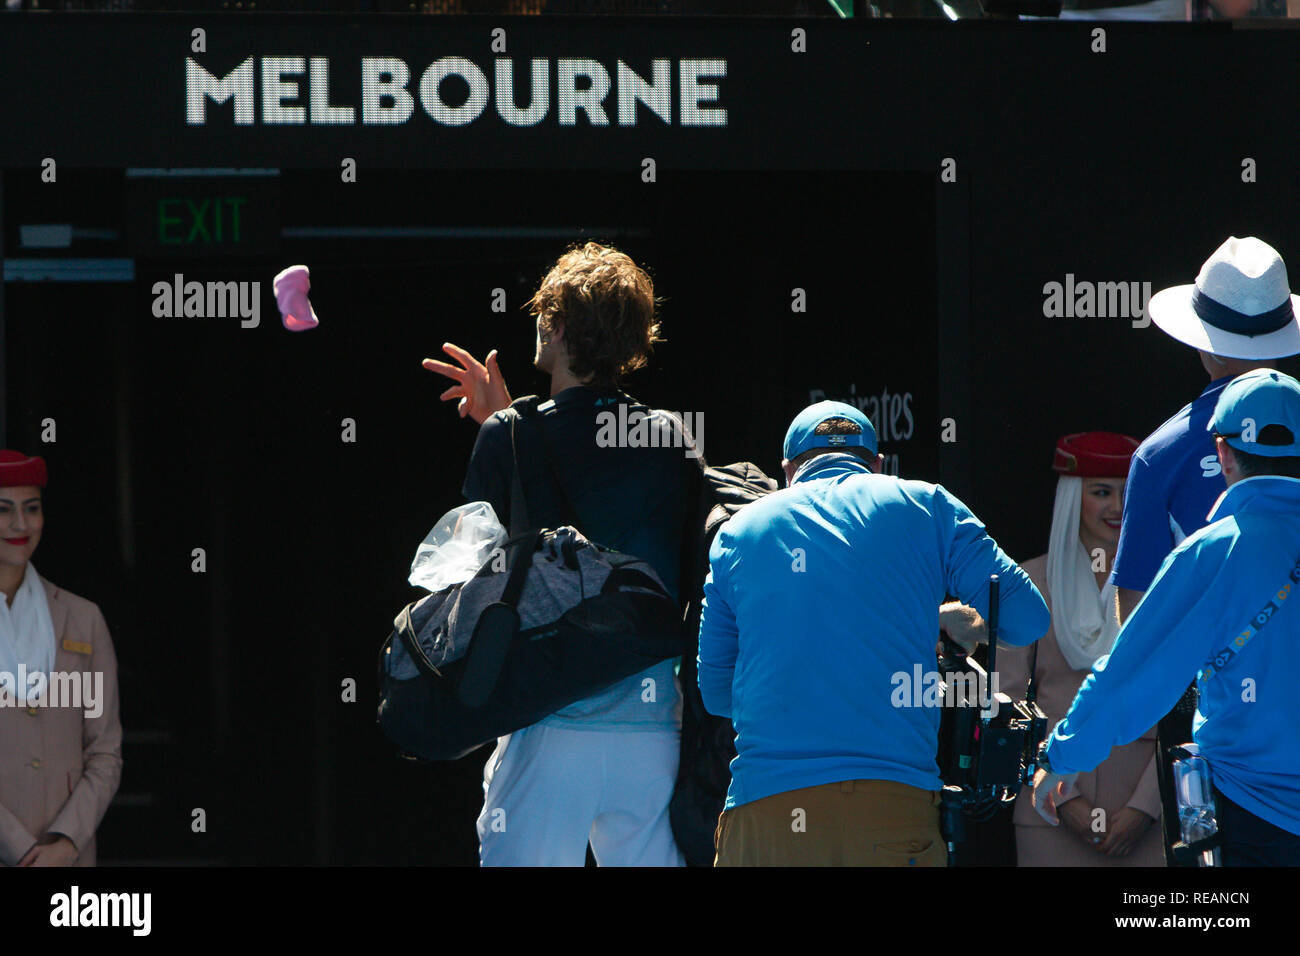 Melbourne, Australia. 21th Jan, 2019. Alexander Zverev from Germany lost his 4th rd match against Milos Raonic from Canada at the 2019 Australian Open Grand Slam tennis tournament in Melbourne, Australia. Frank Molter/Alamy Live news Stock Photo